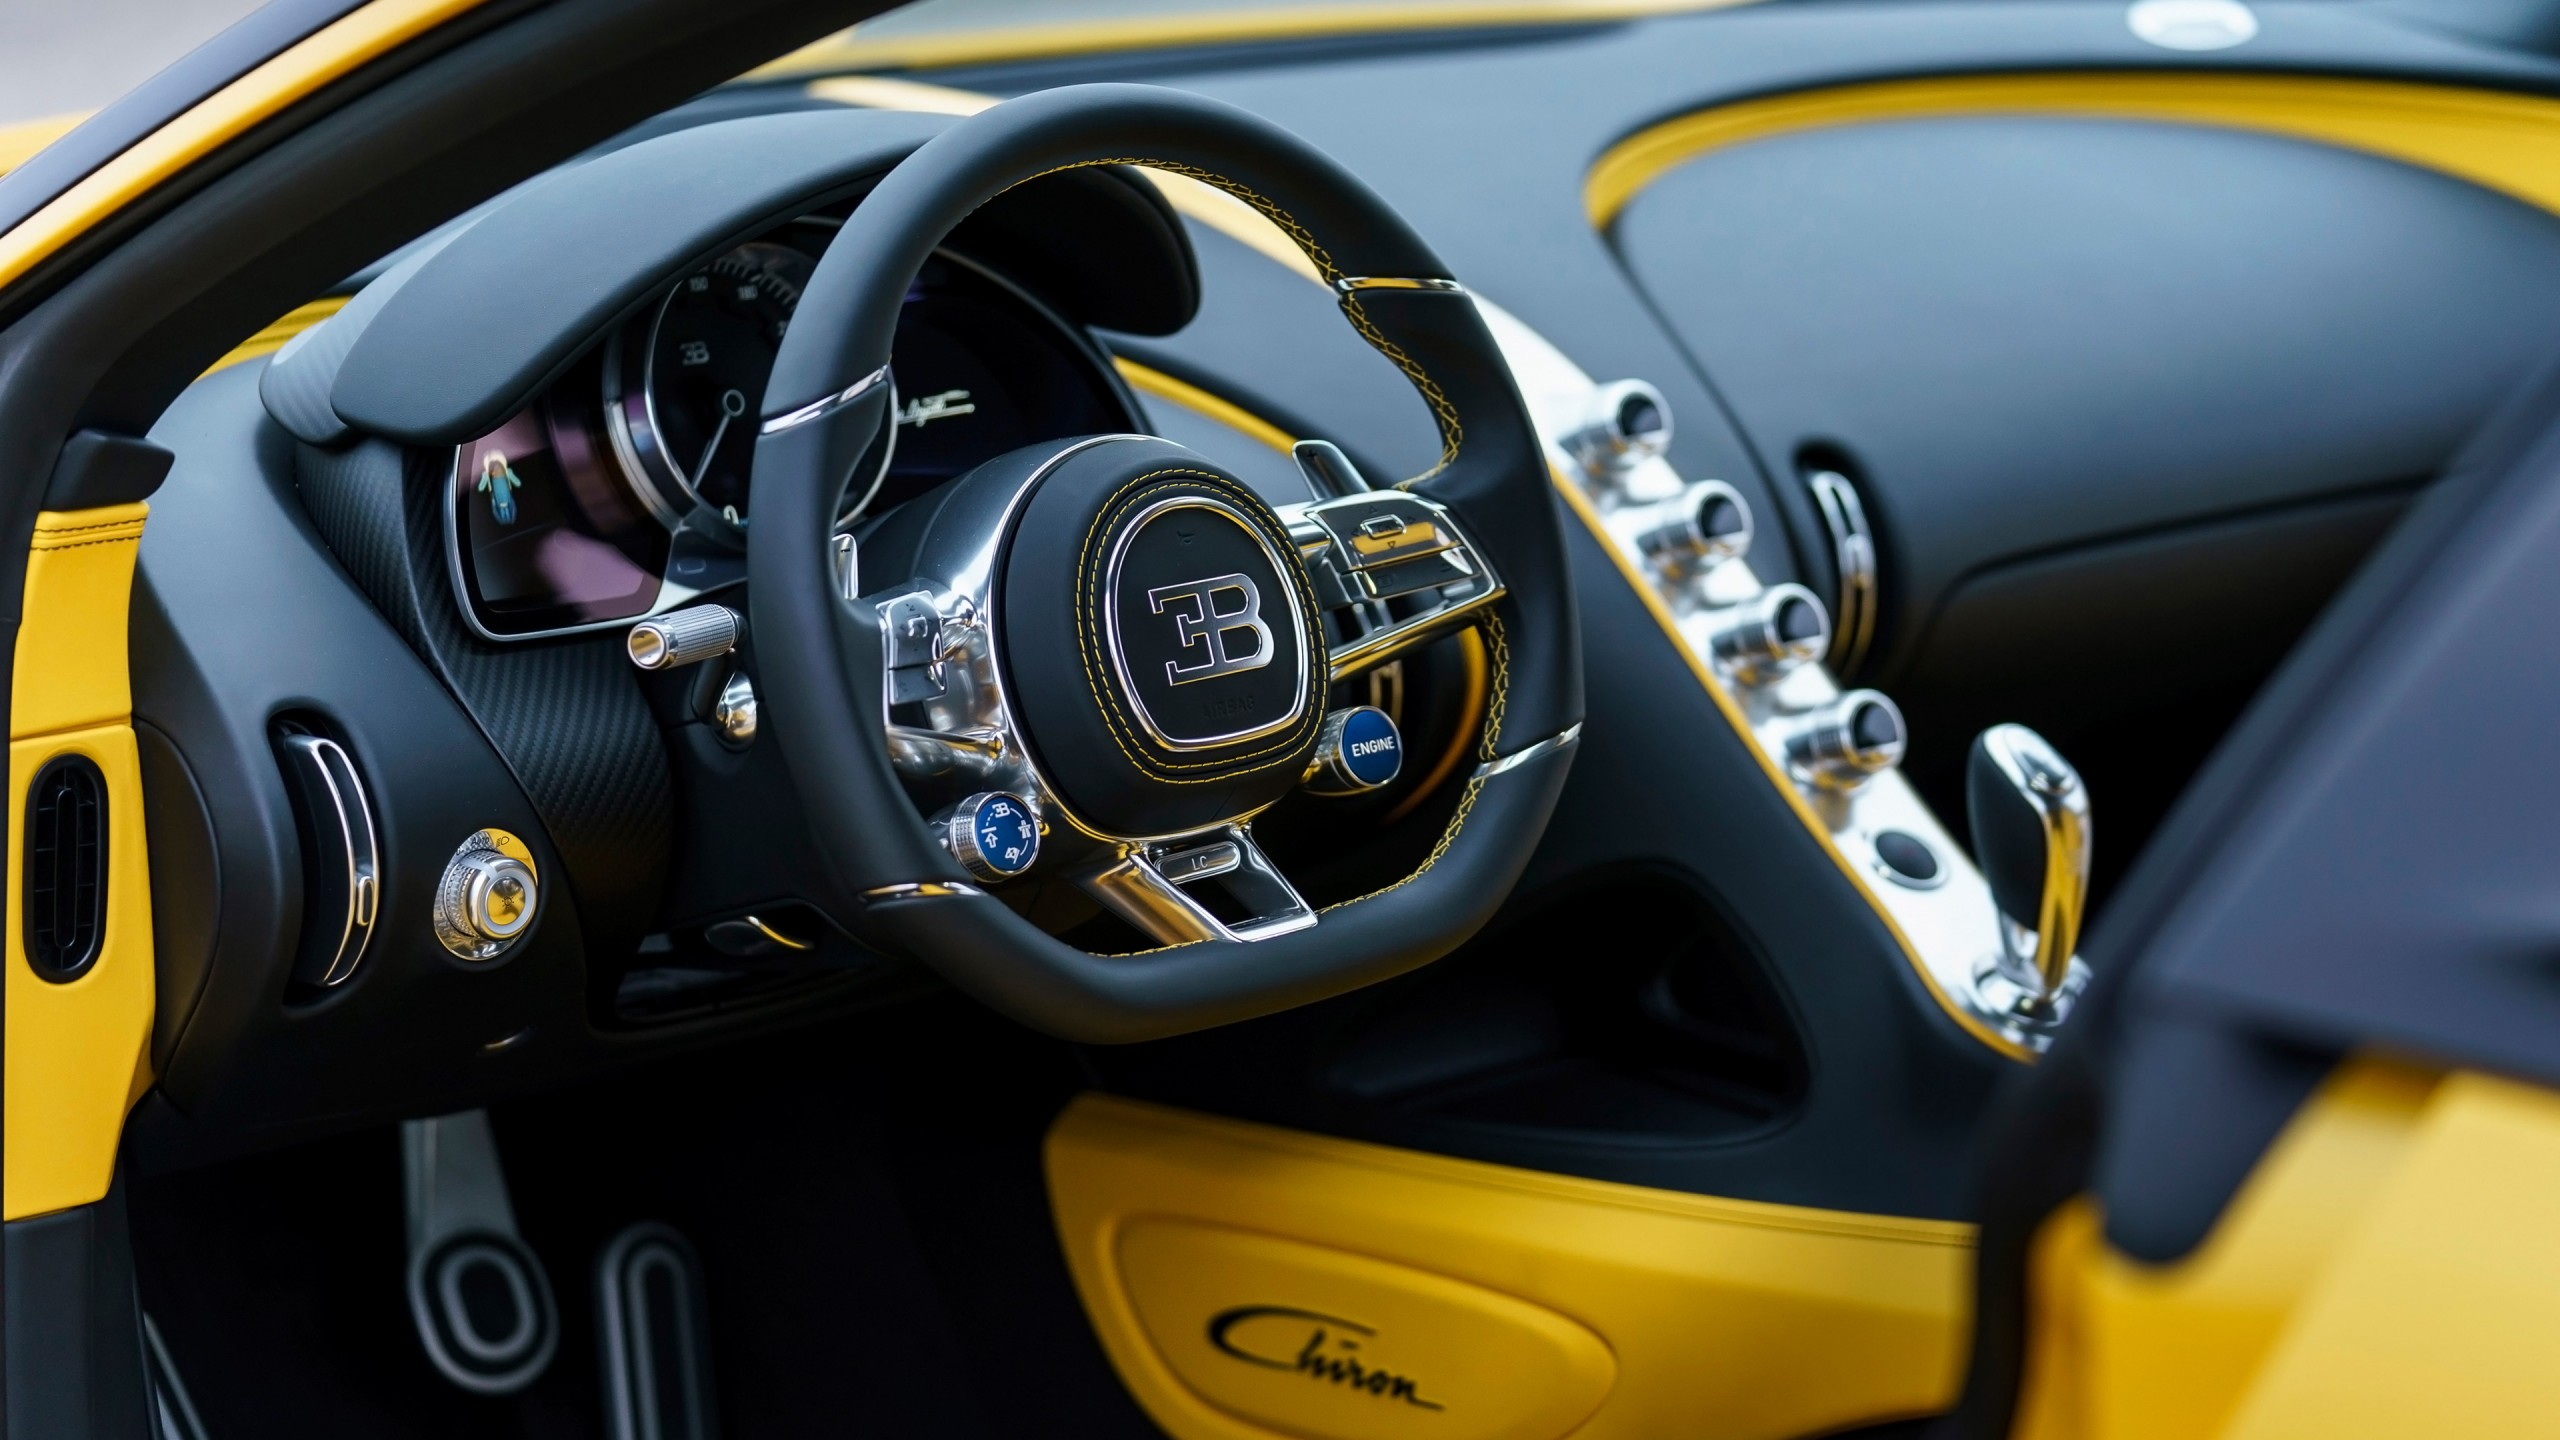 2018 Bugatti Chiron Yellow And Black Interior Wallpaper